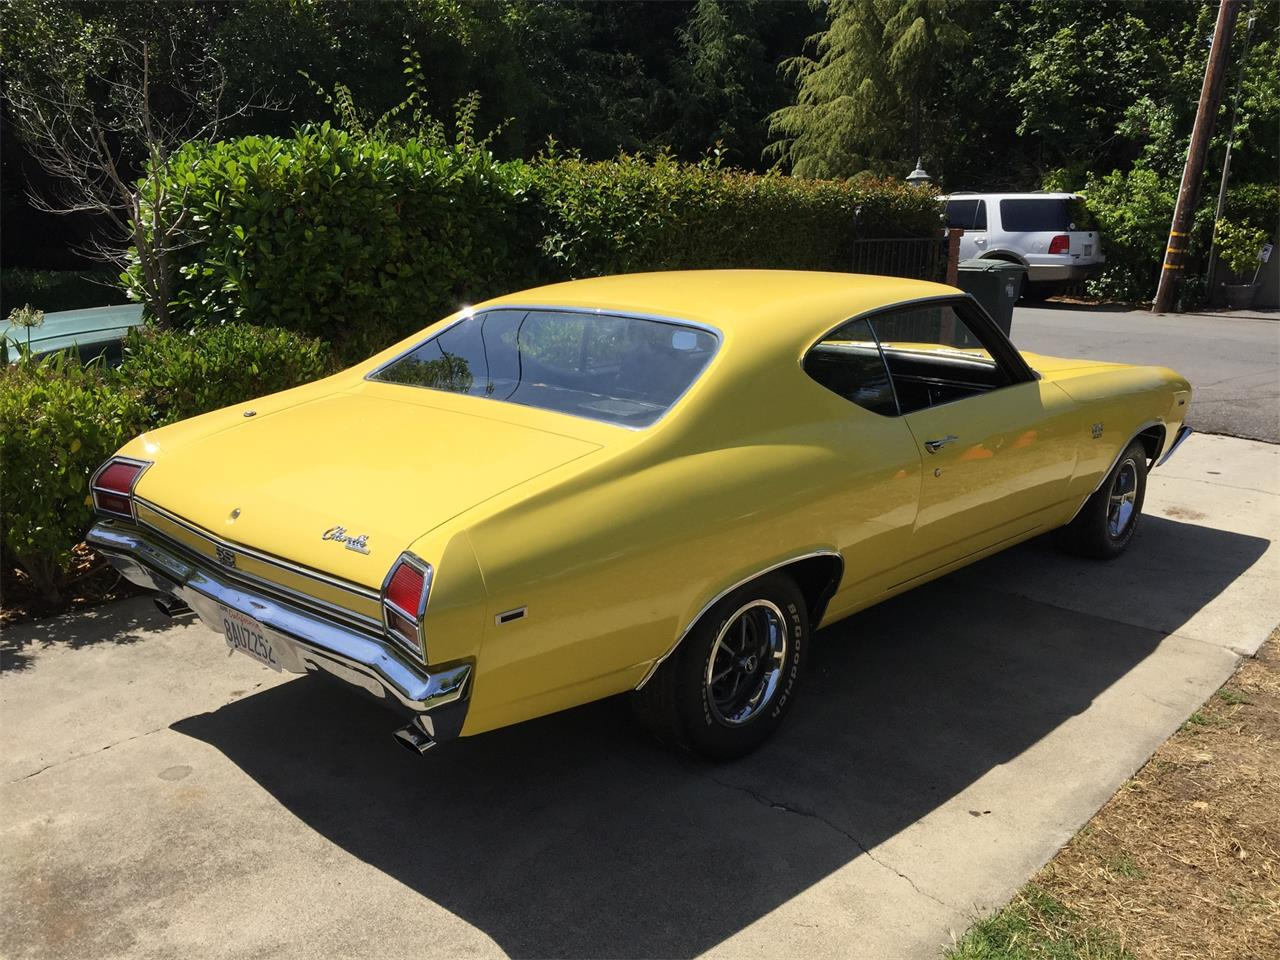 1969 Chevrolet Chevelle SS (CC-1260988) for sale in Redwood City, California